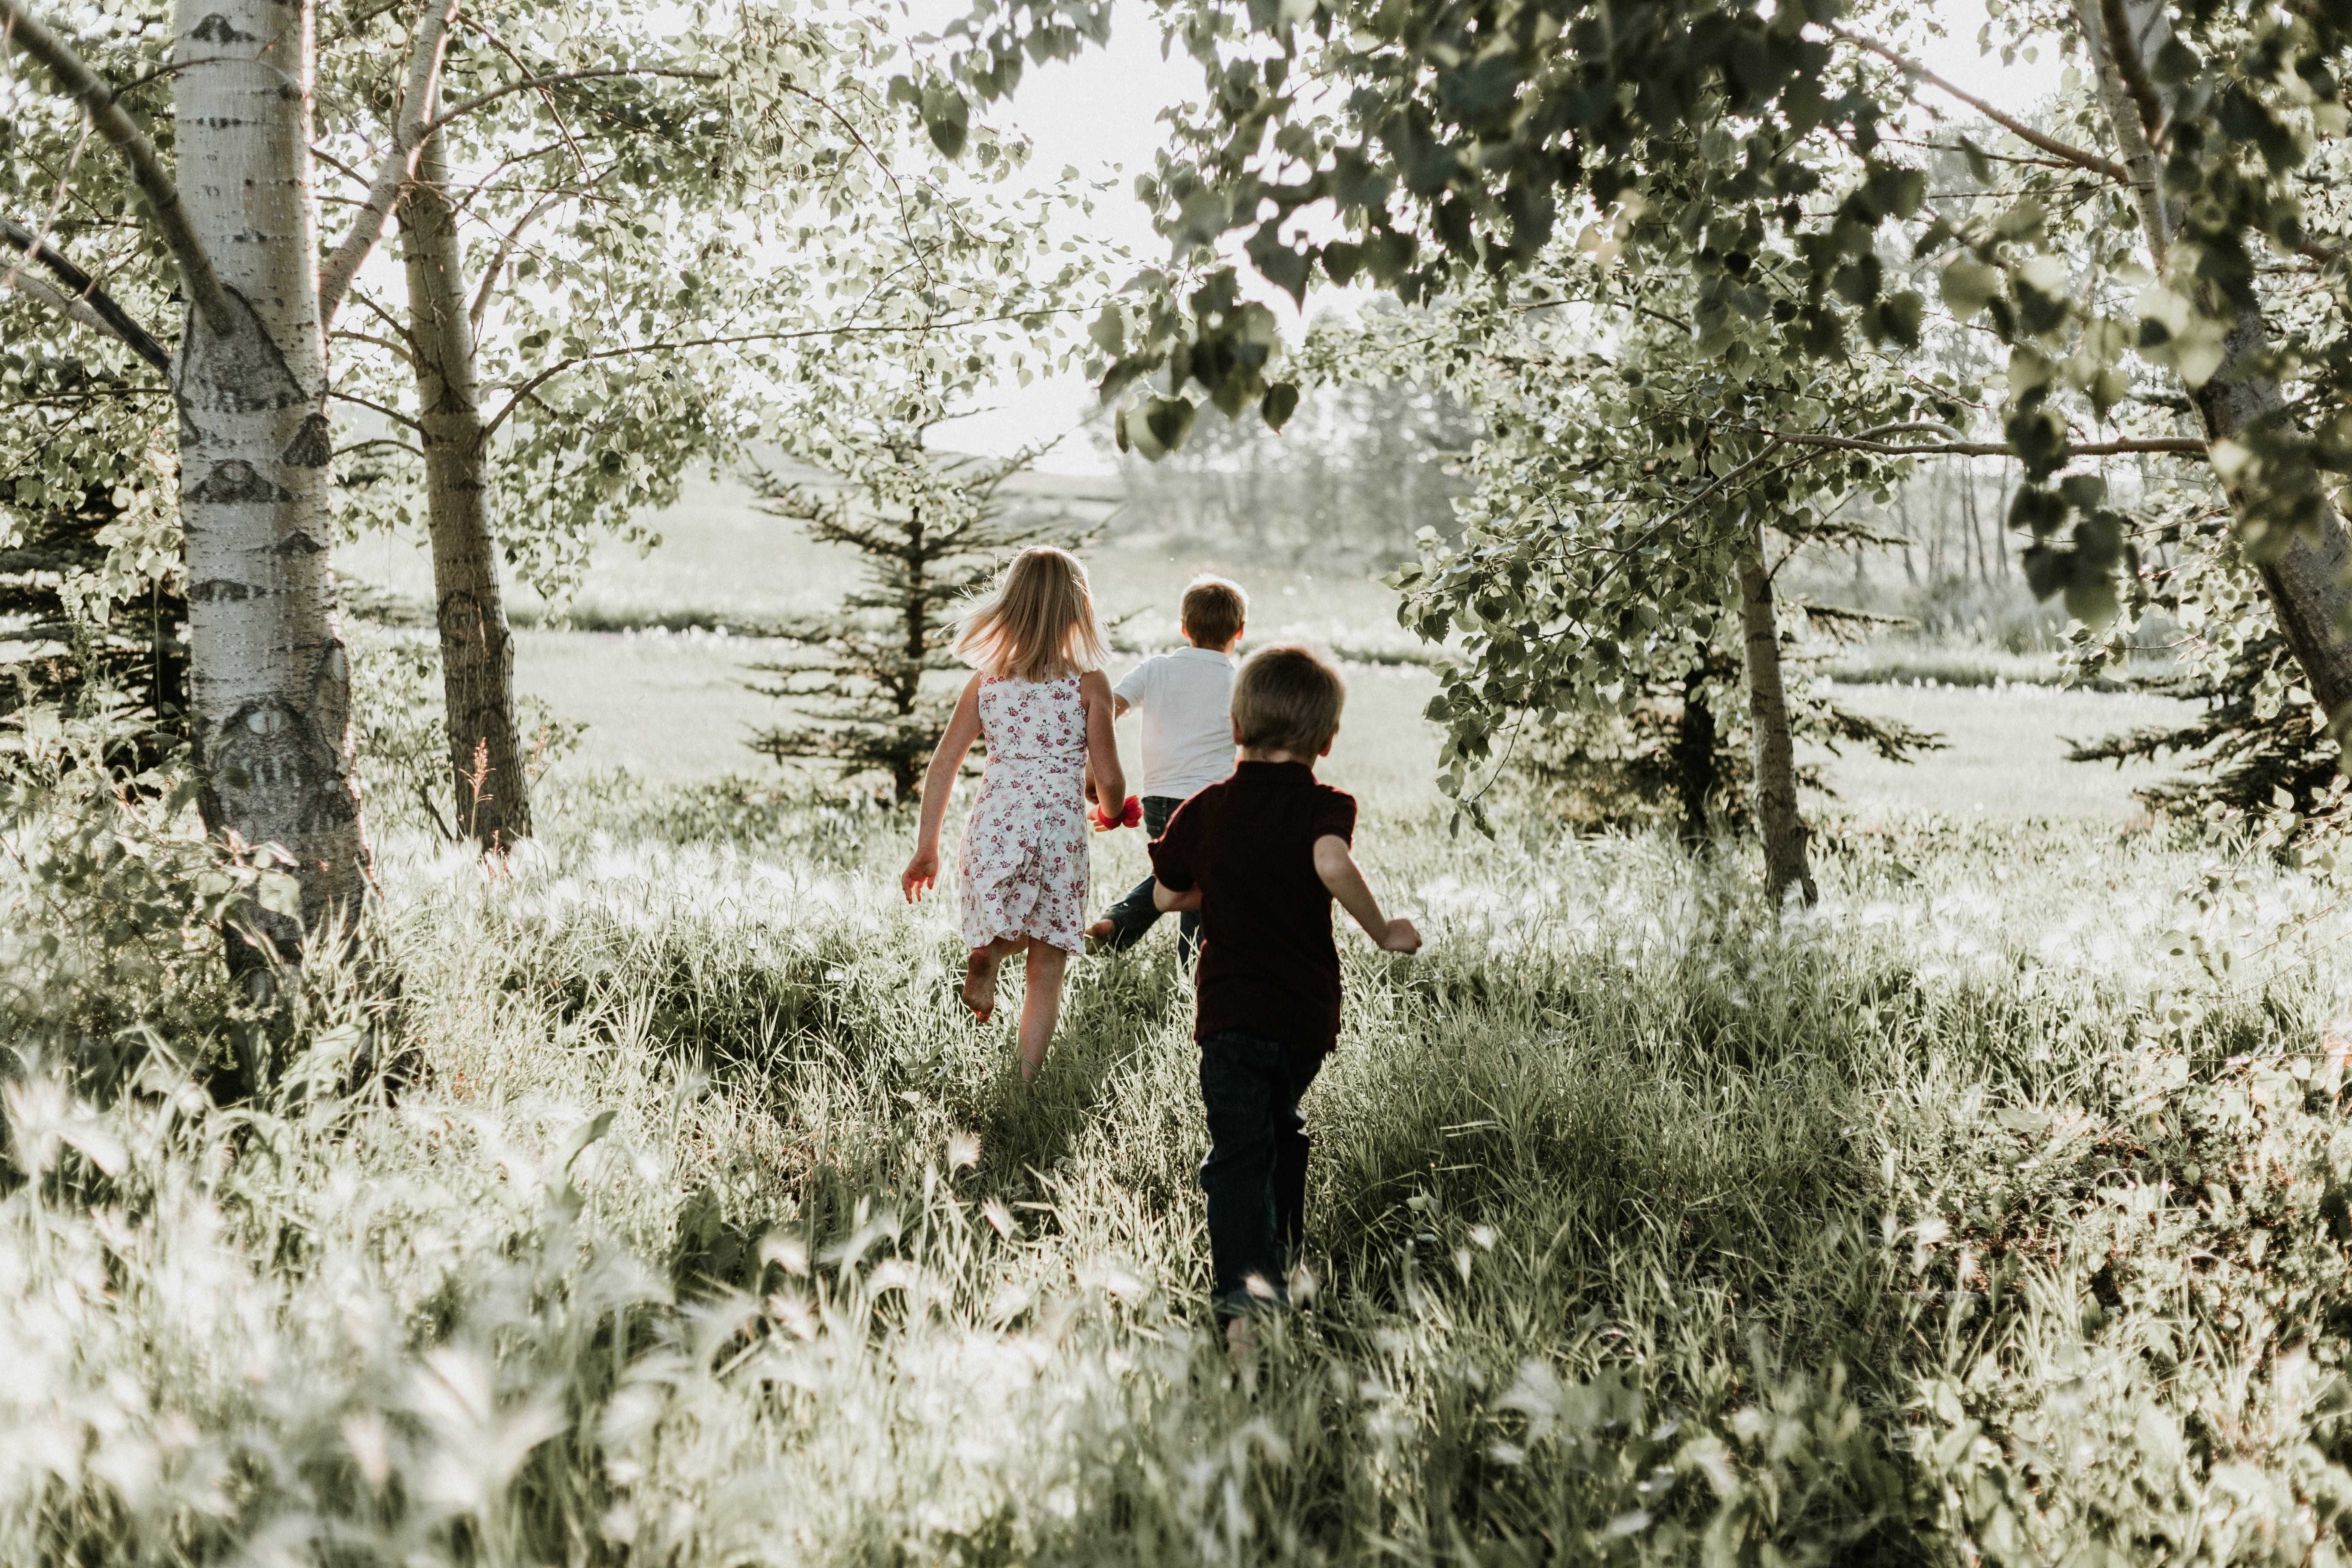 94193 download wallpaper Grass, Children, Miscellanea, Miscellaneous, Stroll, Sunlight screensavers and pictures for free